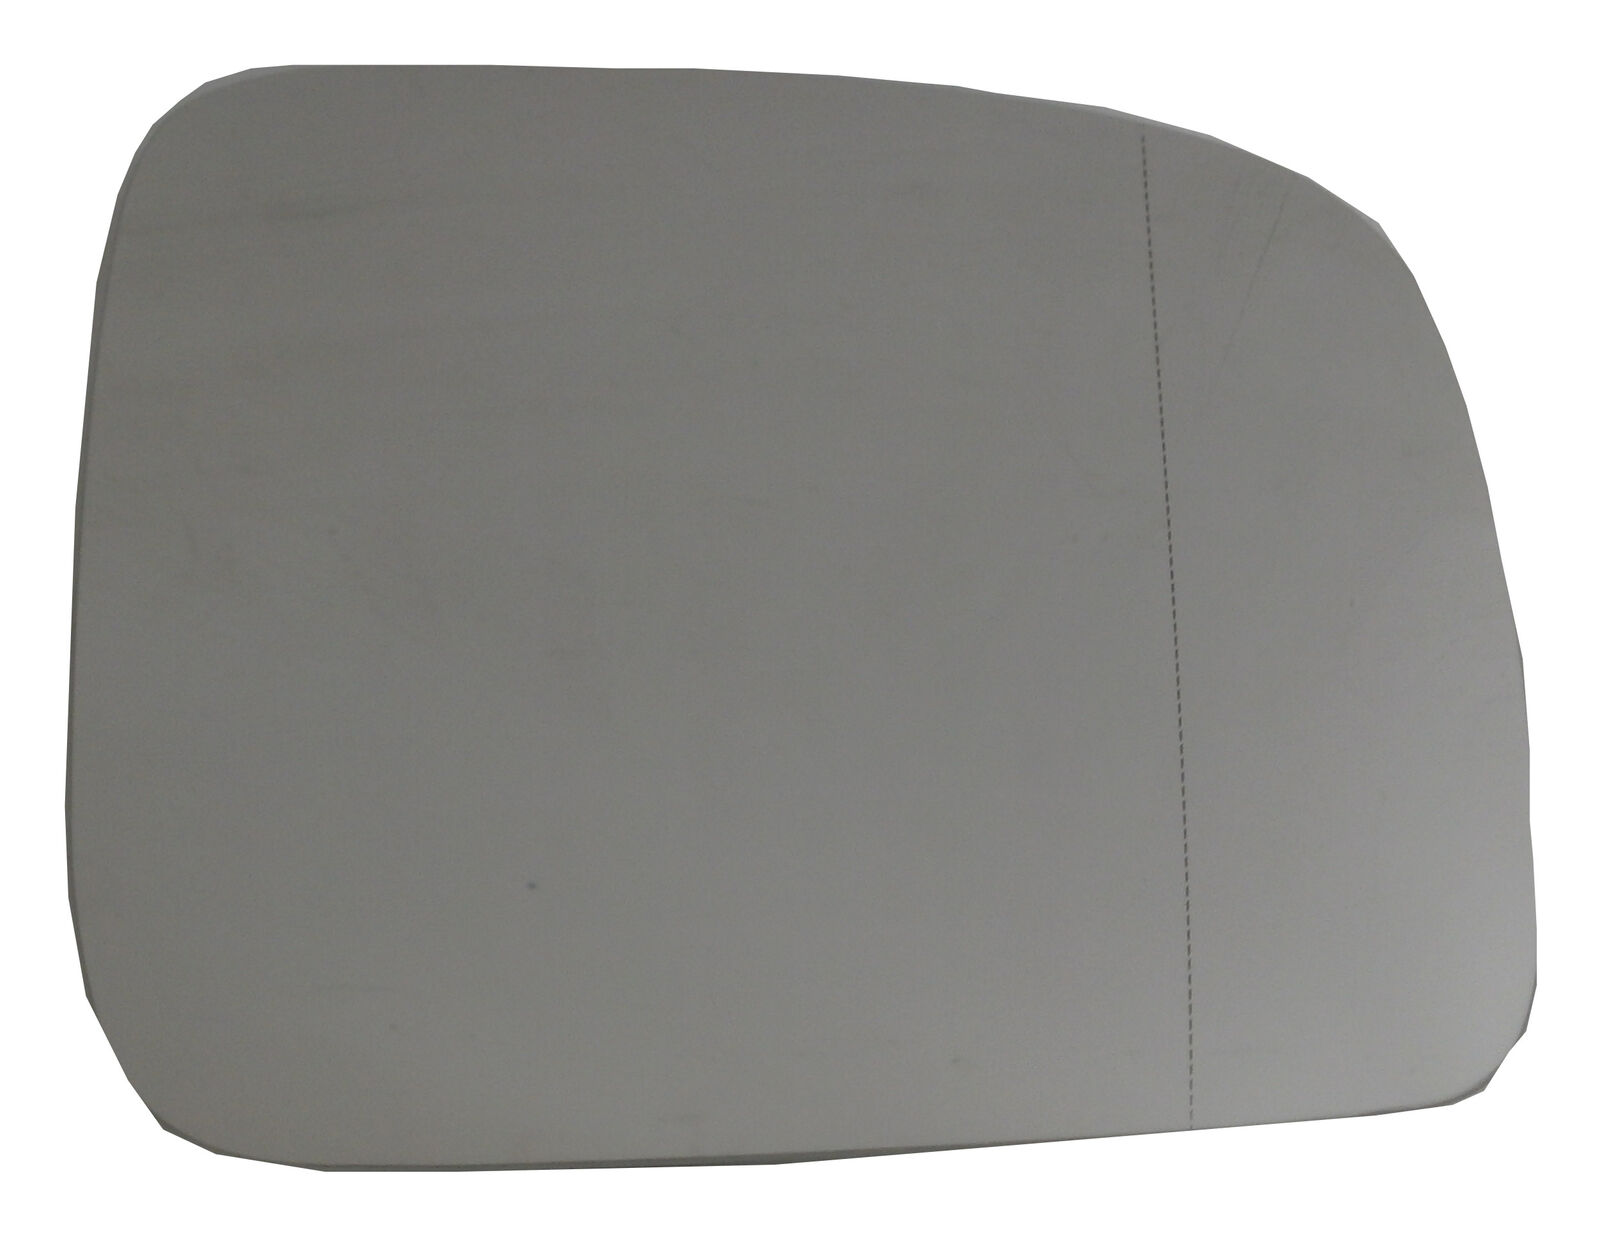 For VW Caravelle 09.03-04.07 - Trupart MG6314 Right Mirror Glass Heated Chrome